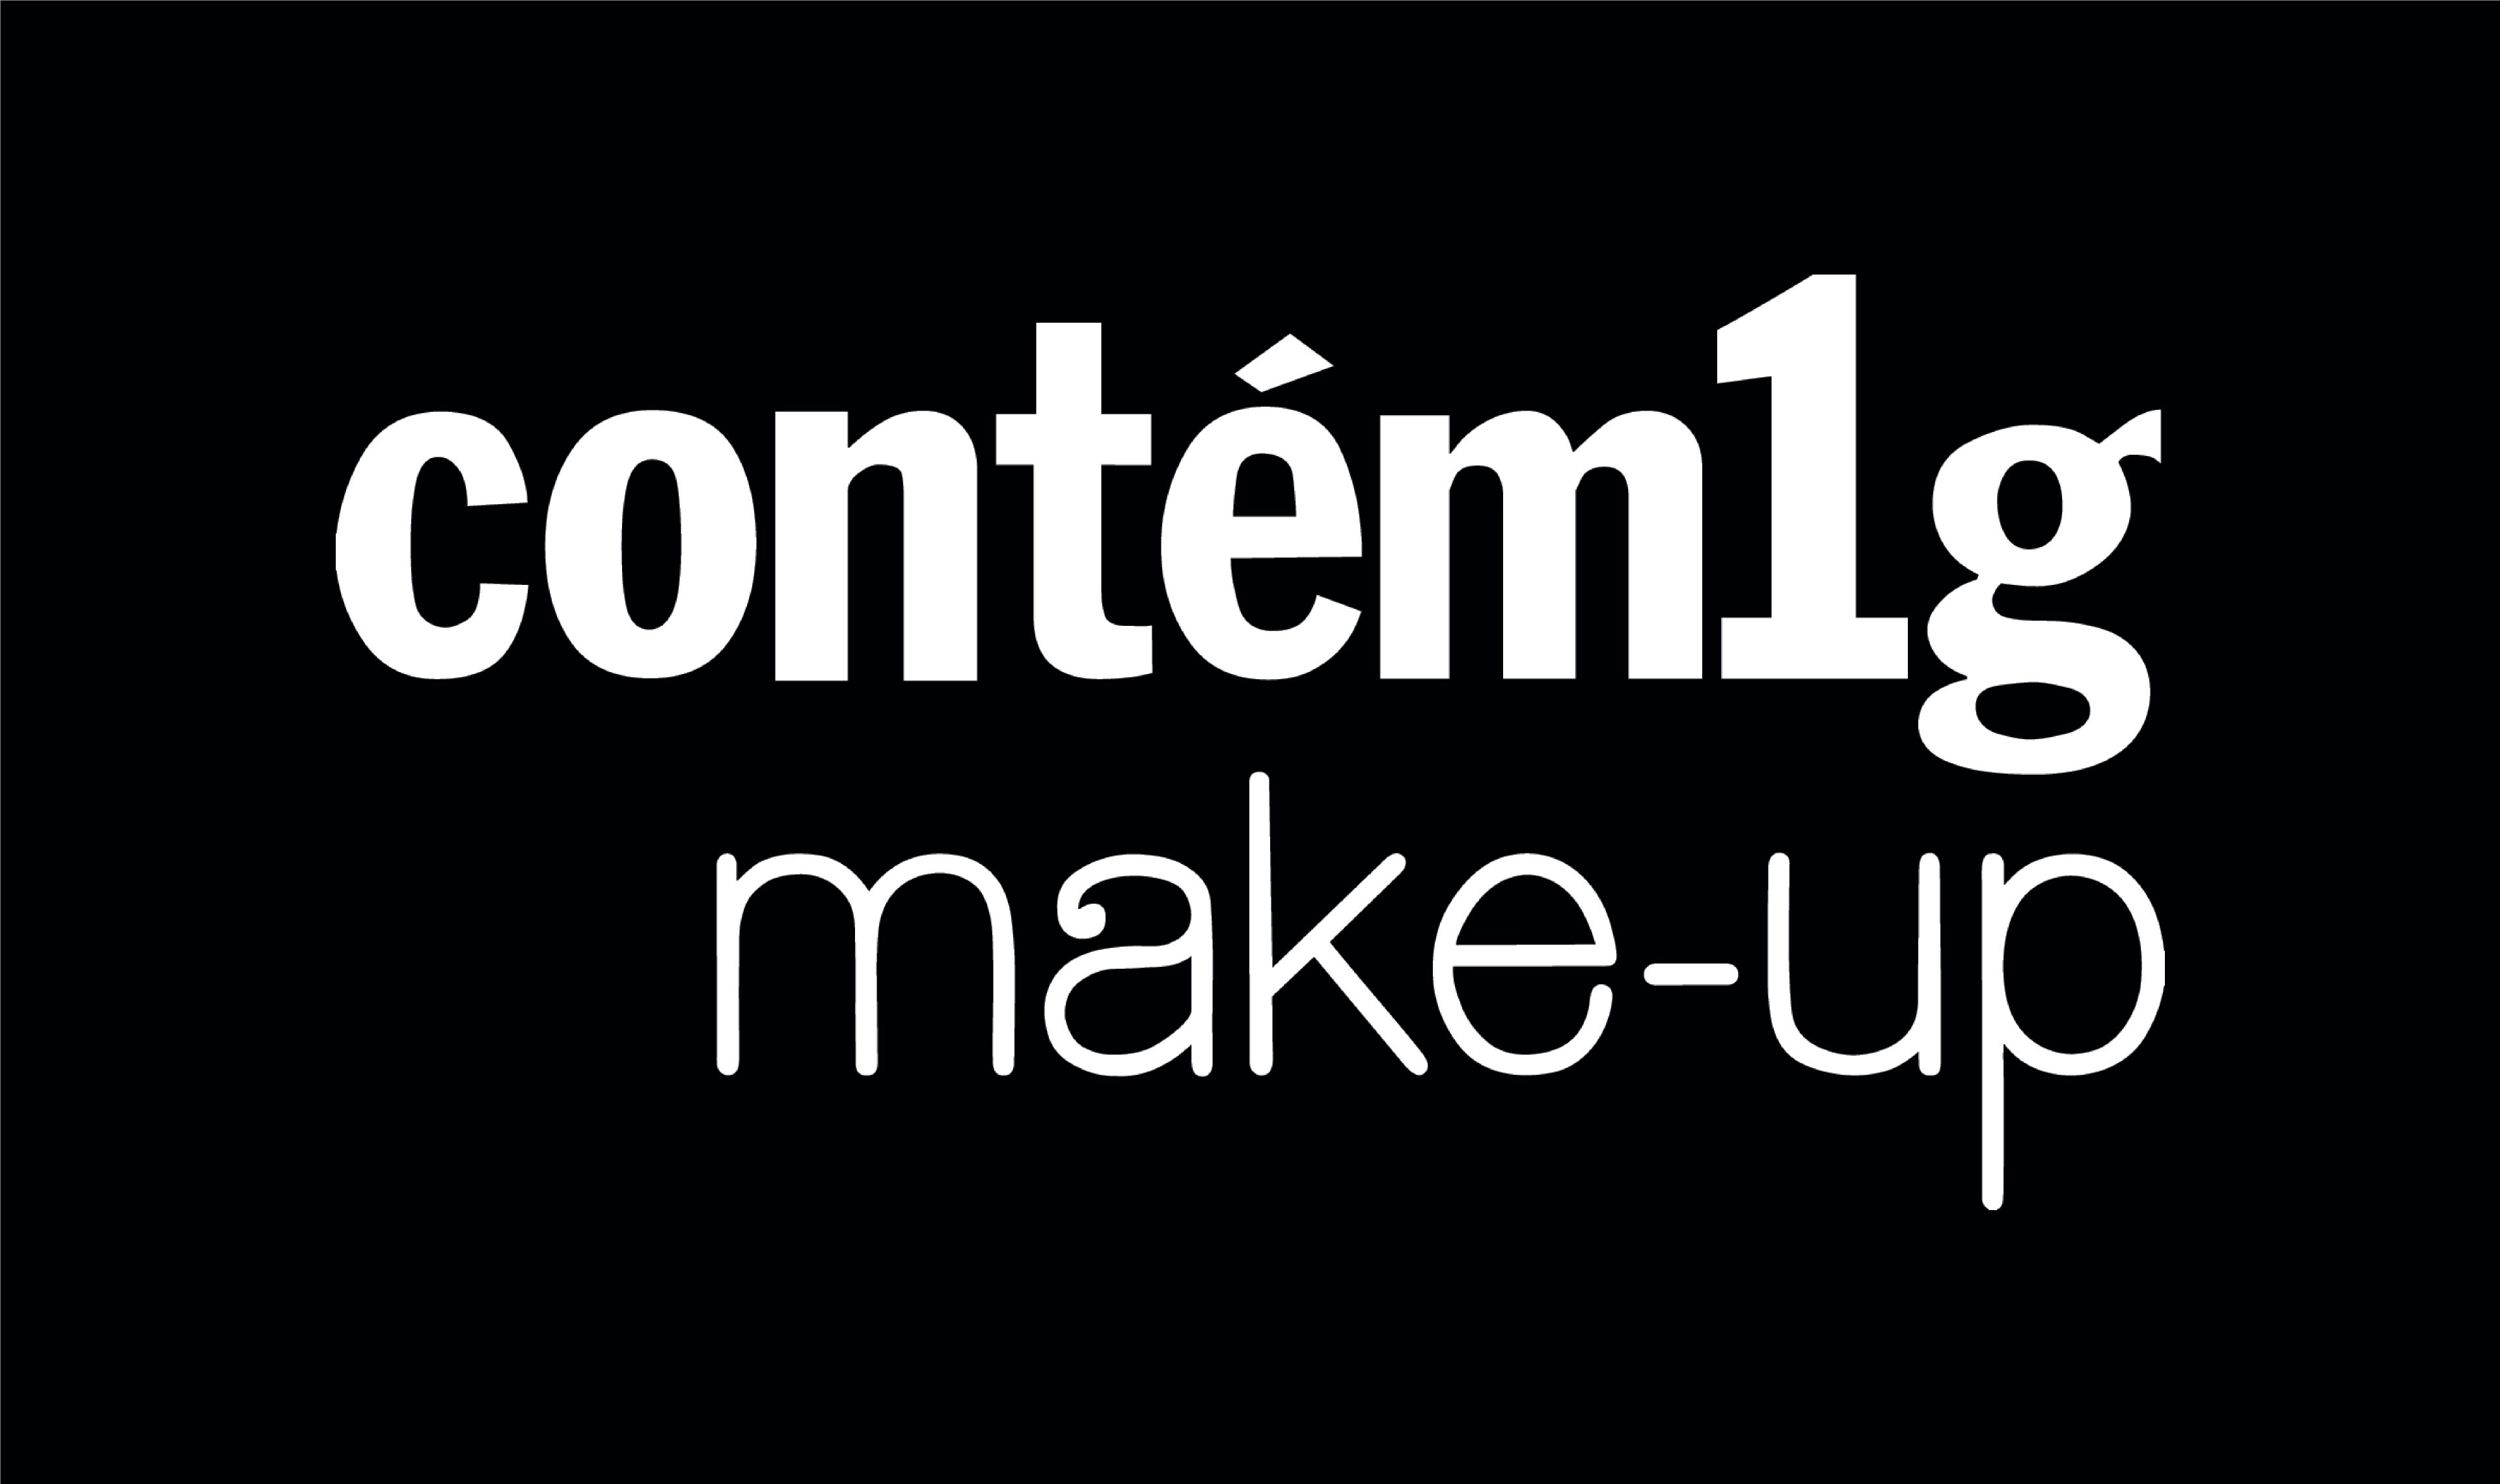 Contém1g Make Up